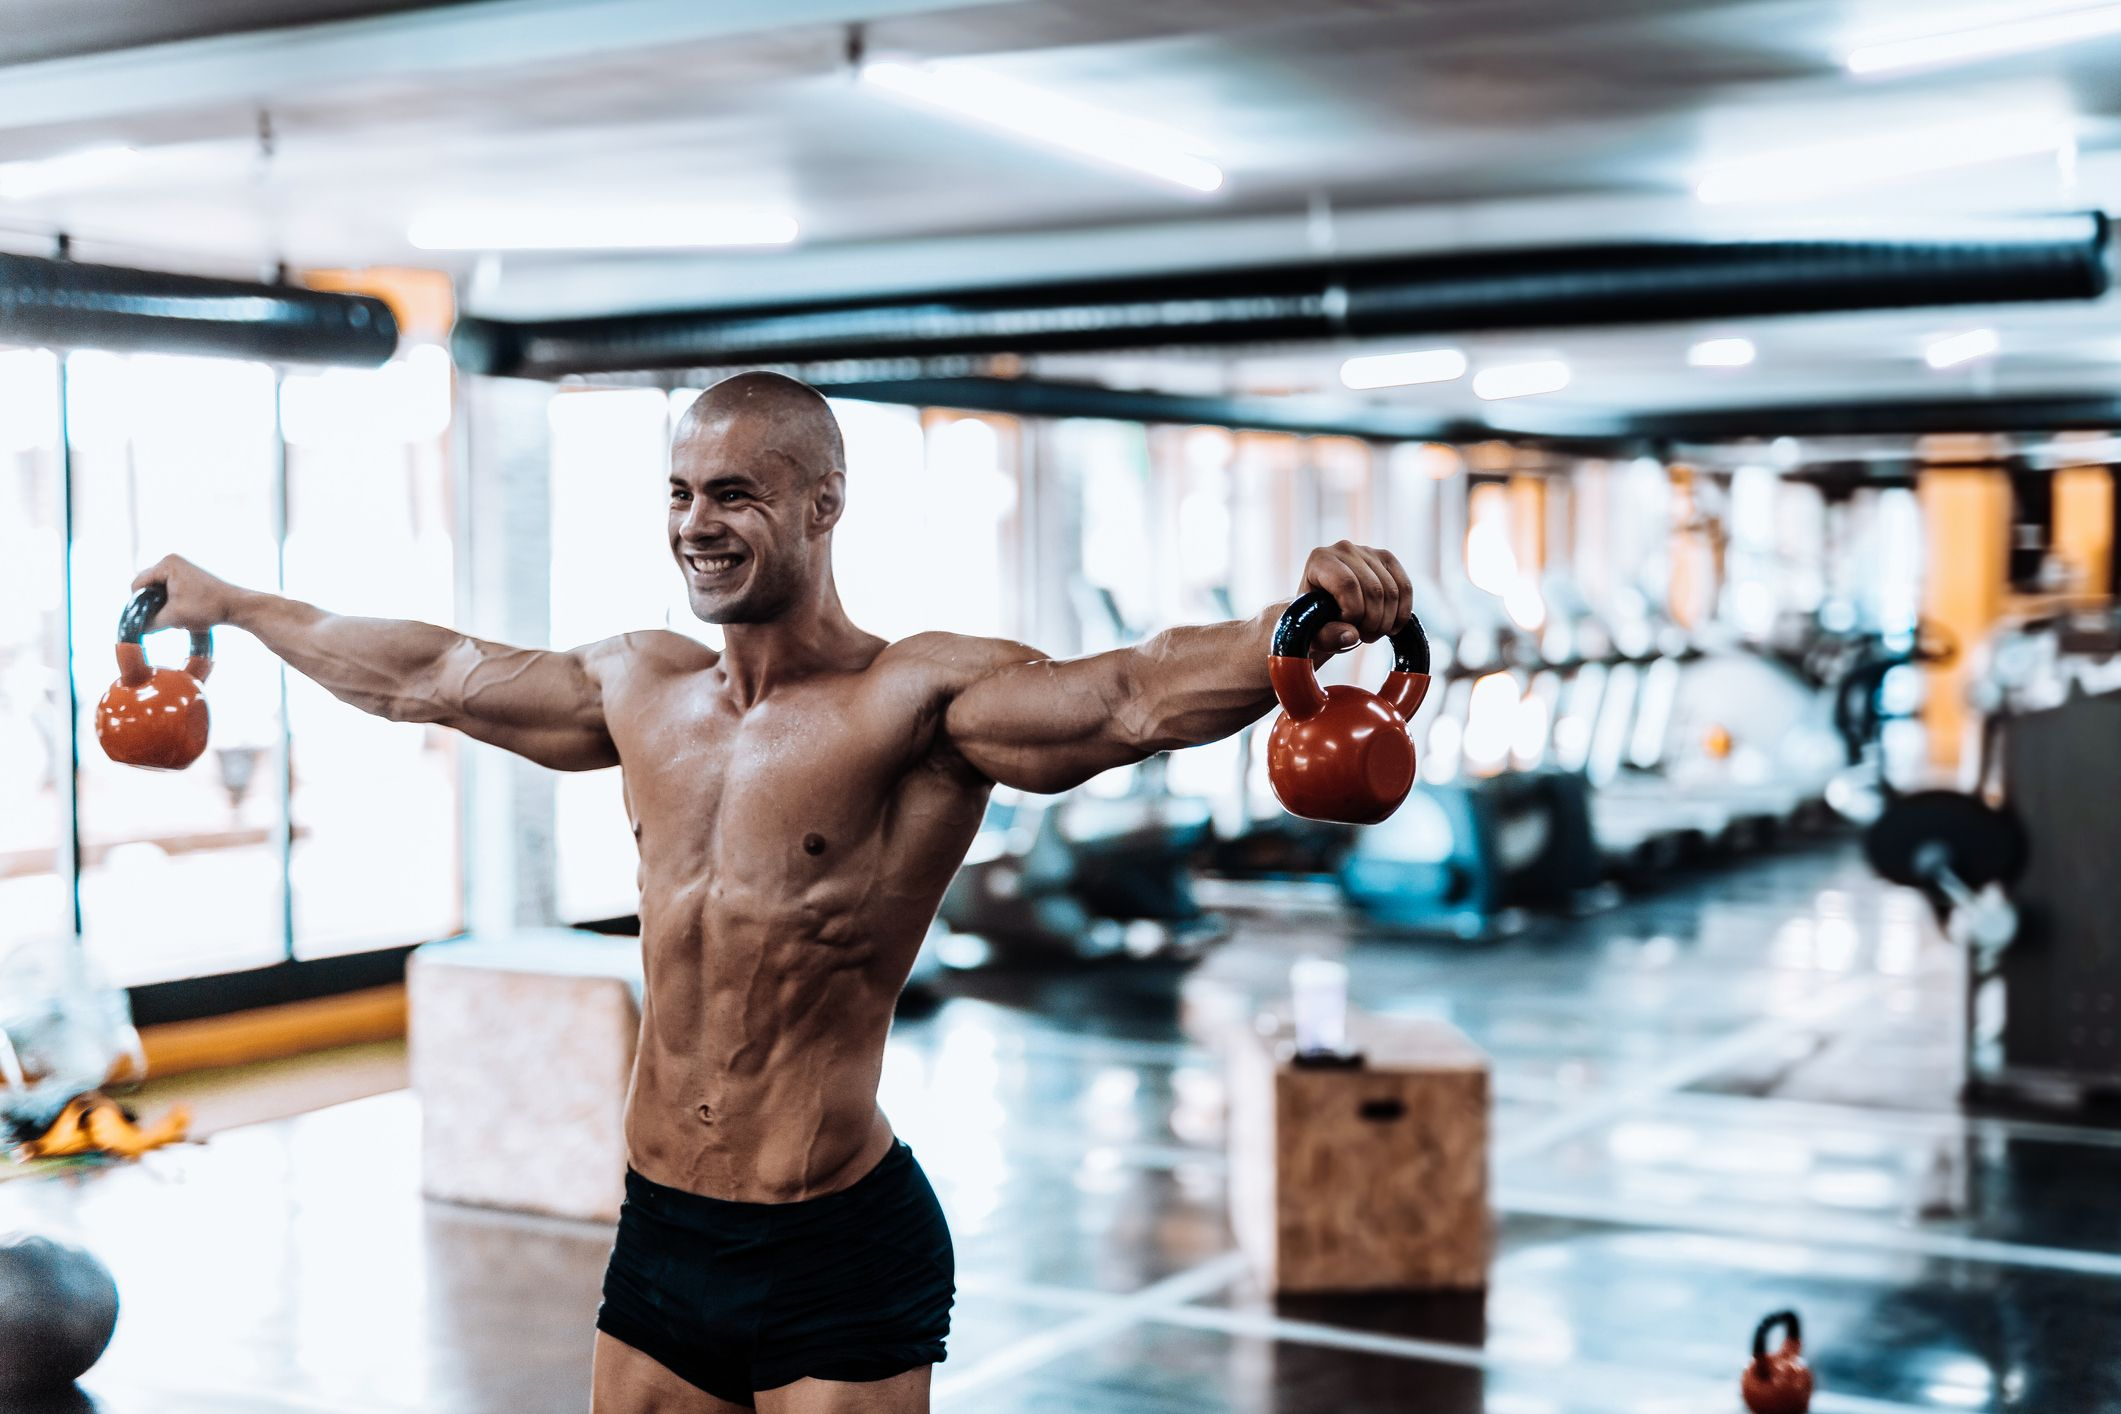 Blast Your Shoulders With This 5-Move, Zero-Press Workout